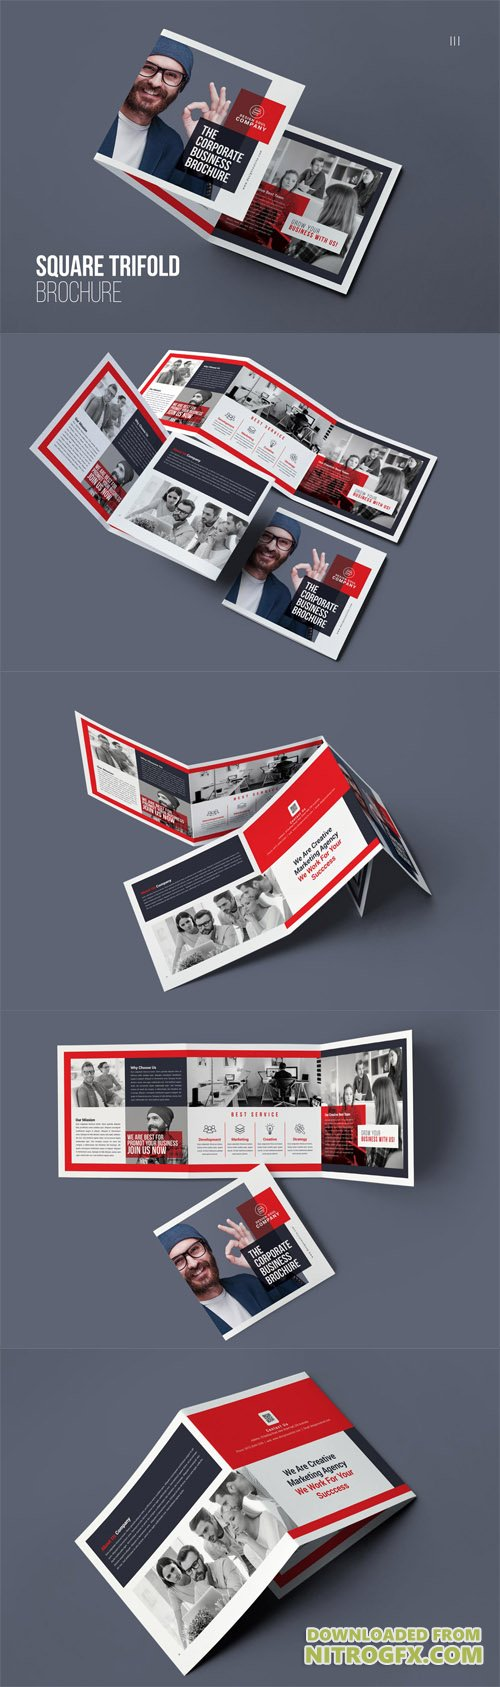 Square Trifold Brochure PSD